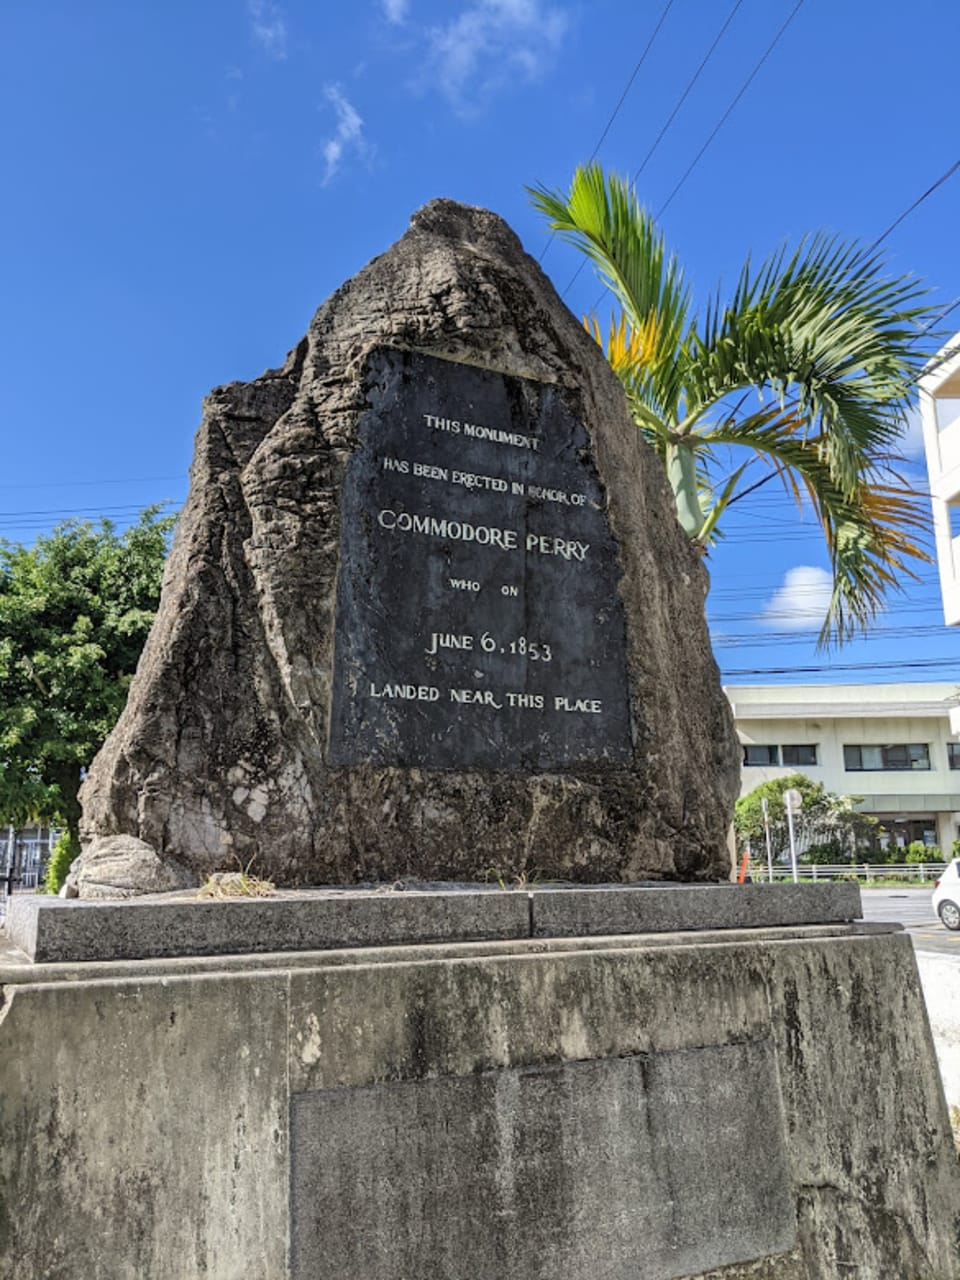 Okinawa - Commodore Perry, Basil Hall and the Foreigner Cemetery